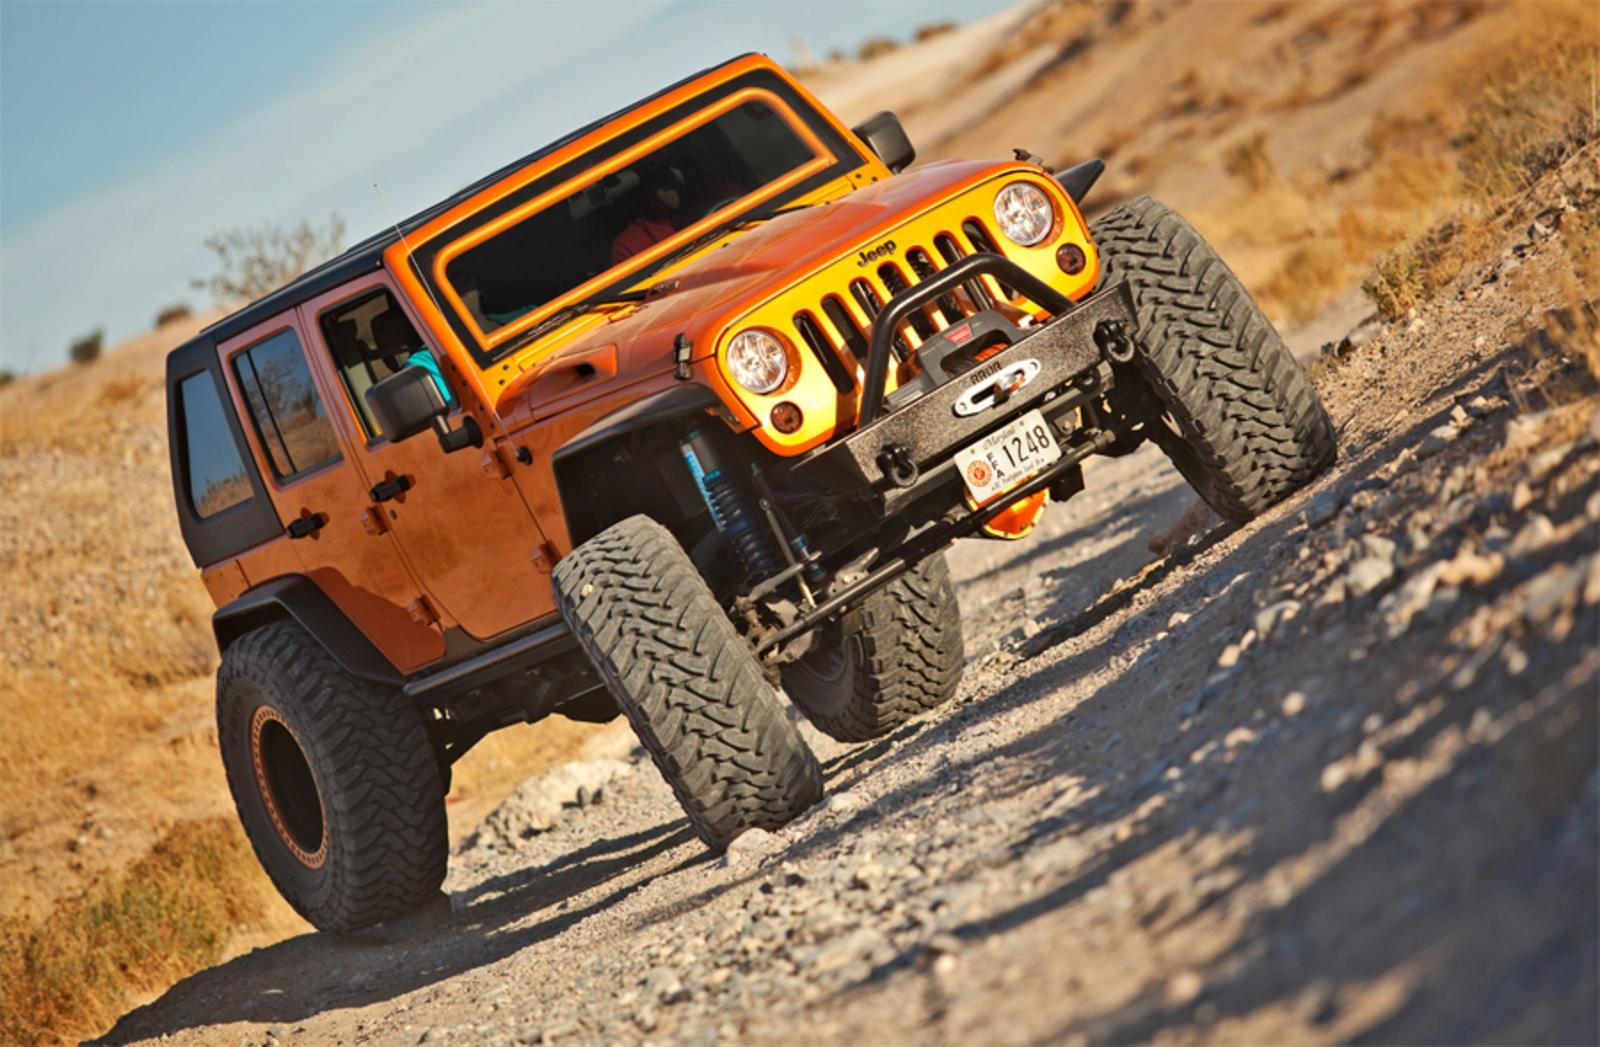 Jeep Wrangler Lease >> 2011 Jeep Wrangler Rock Raider By Hauk Design Review - Top ...